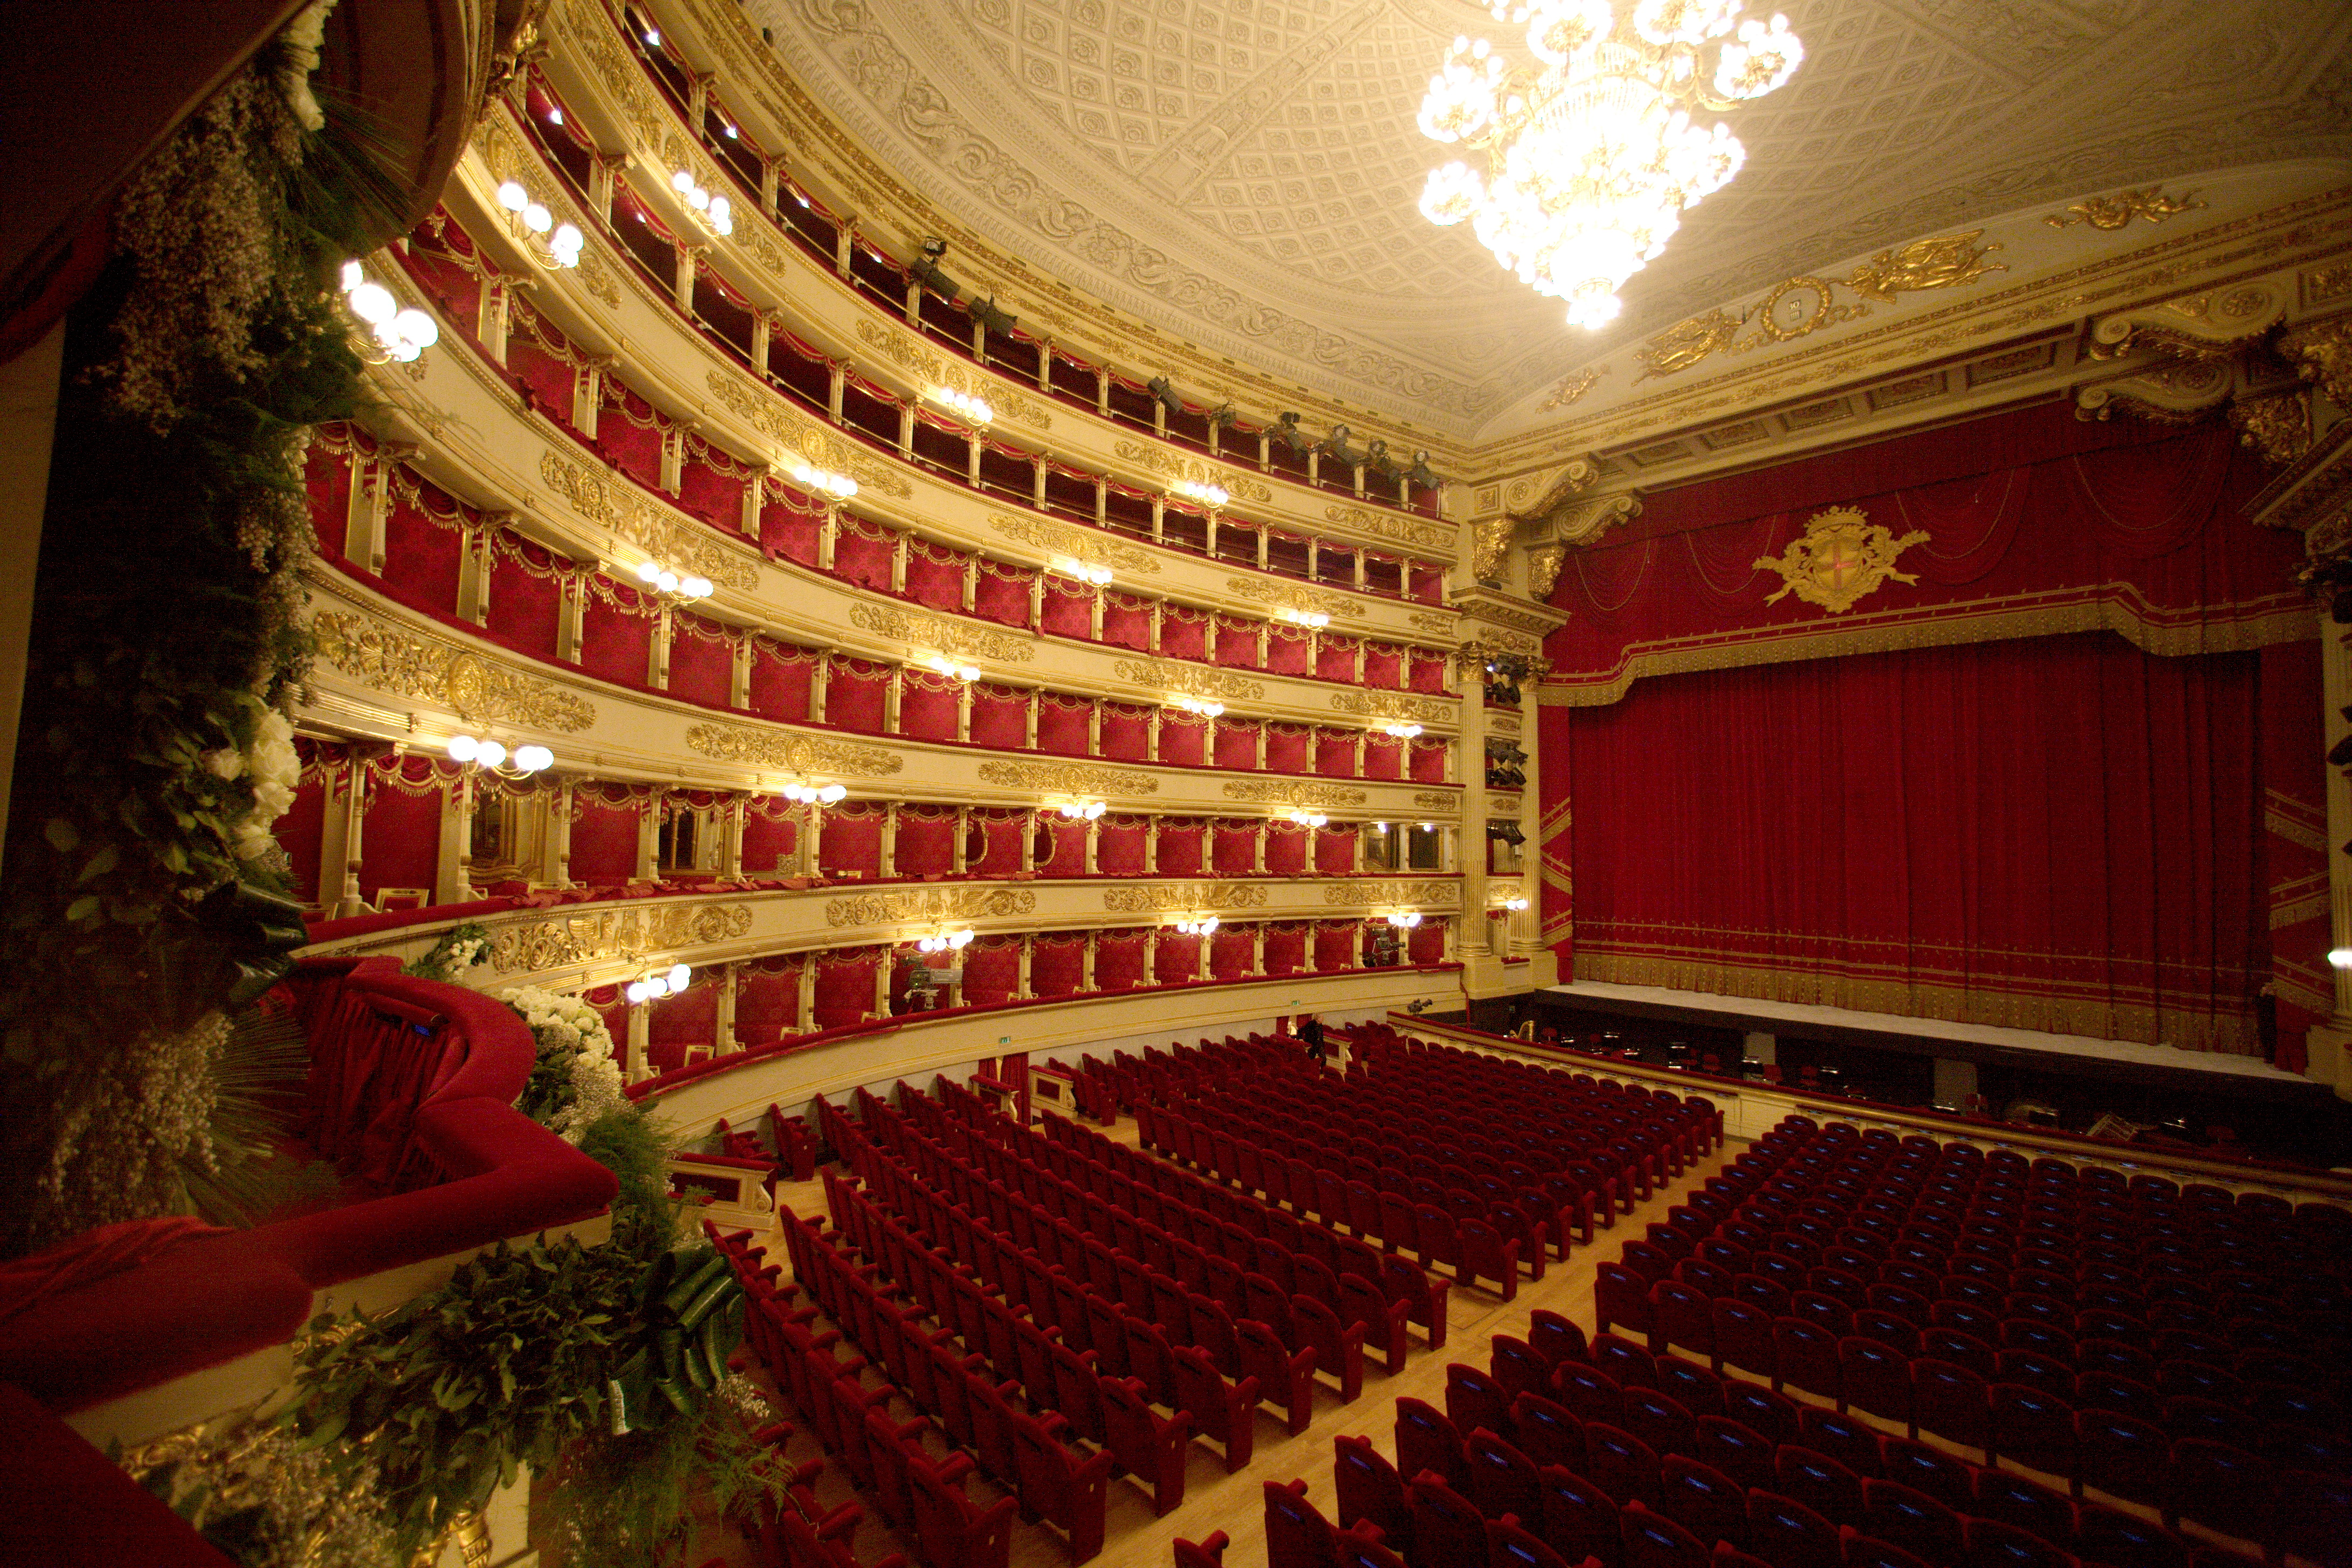 propedeutica danza alla scala milan - photo#27